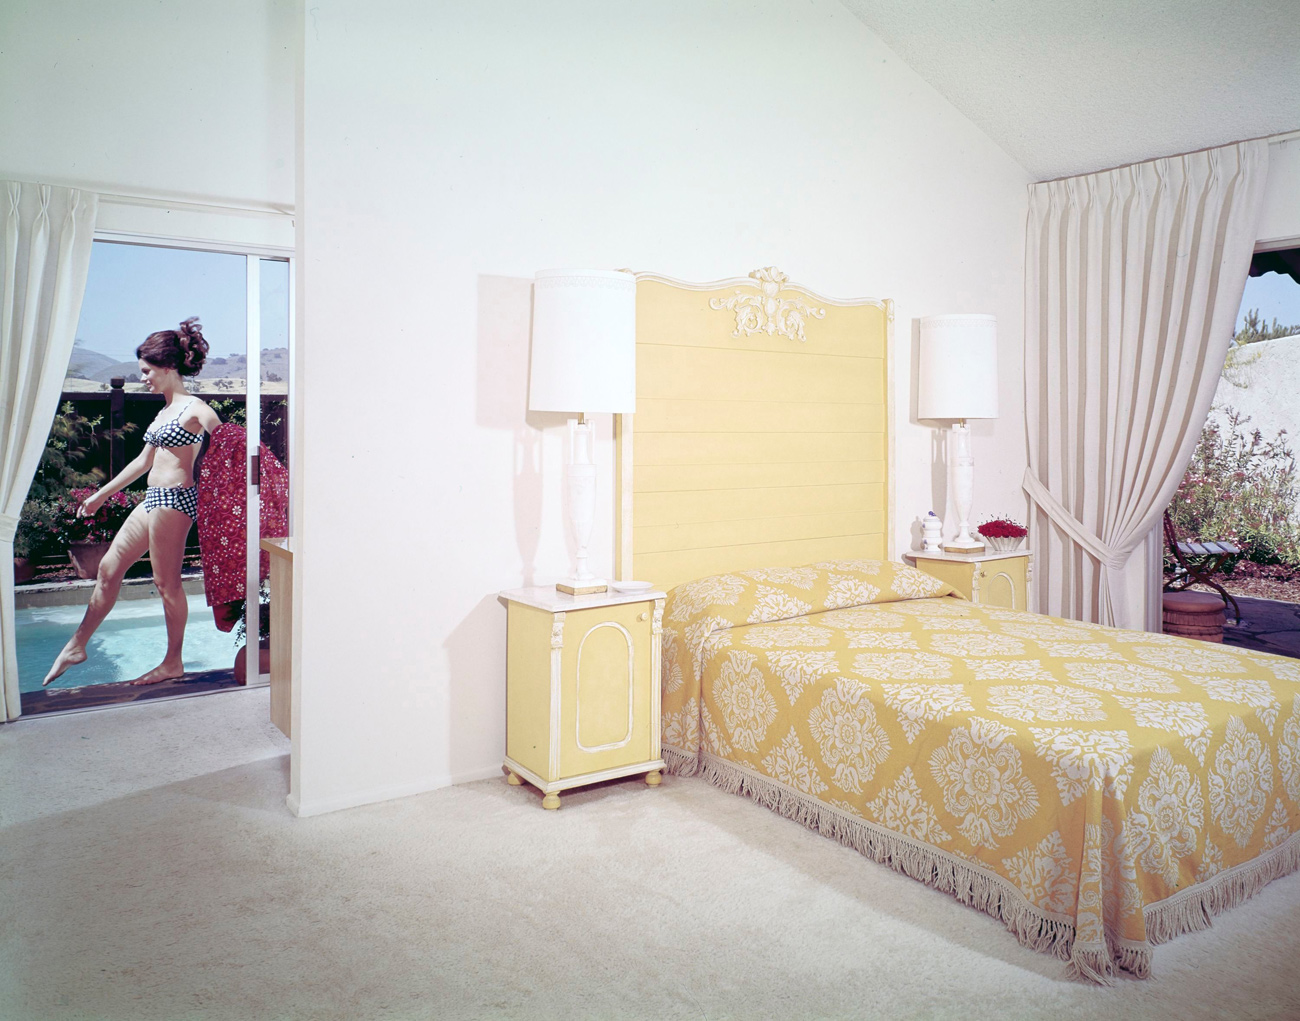 White bedroom with yellow accents. A woman is seen through a window by the pool.